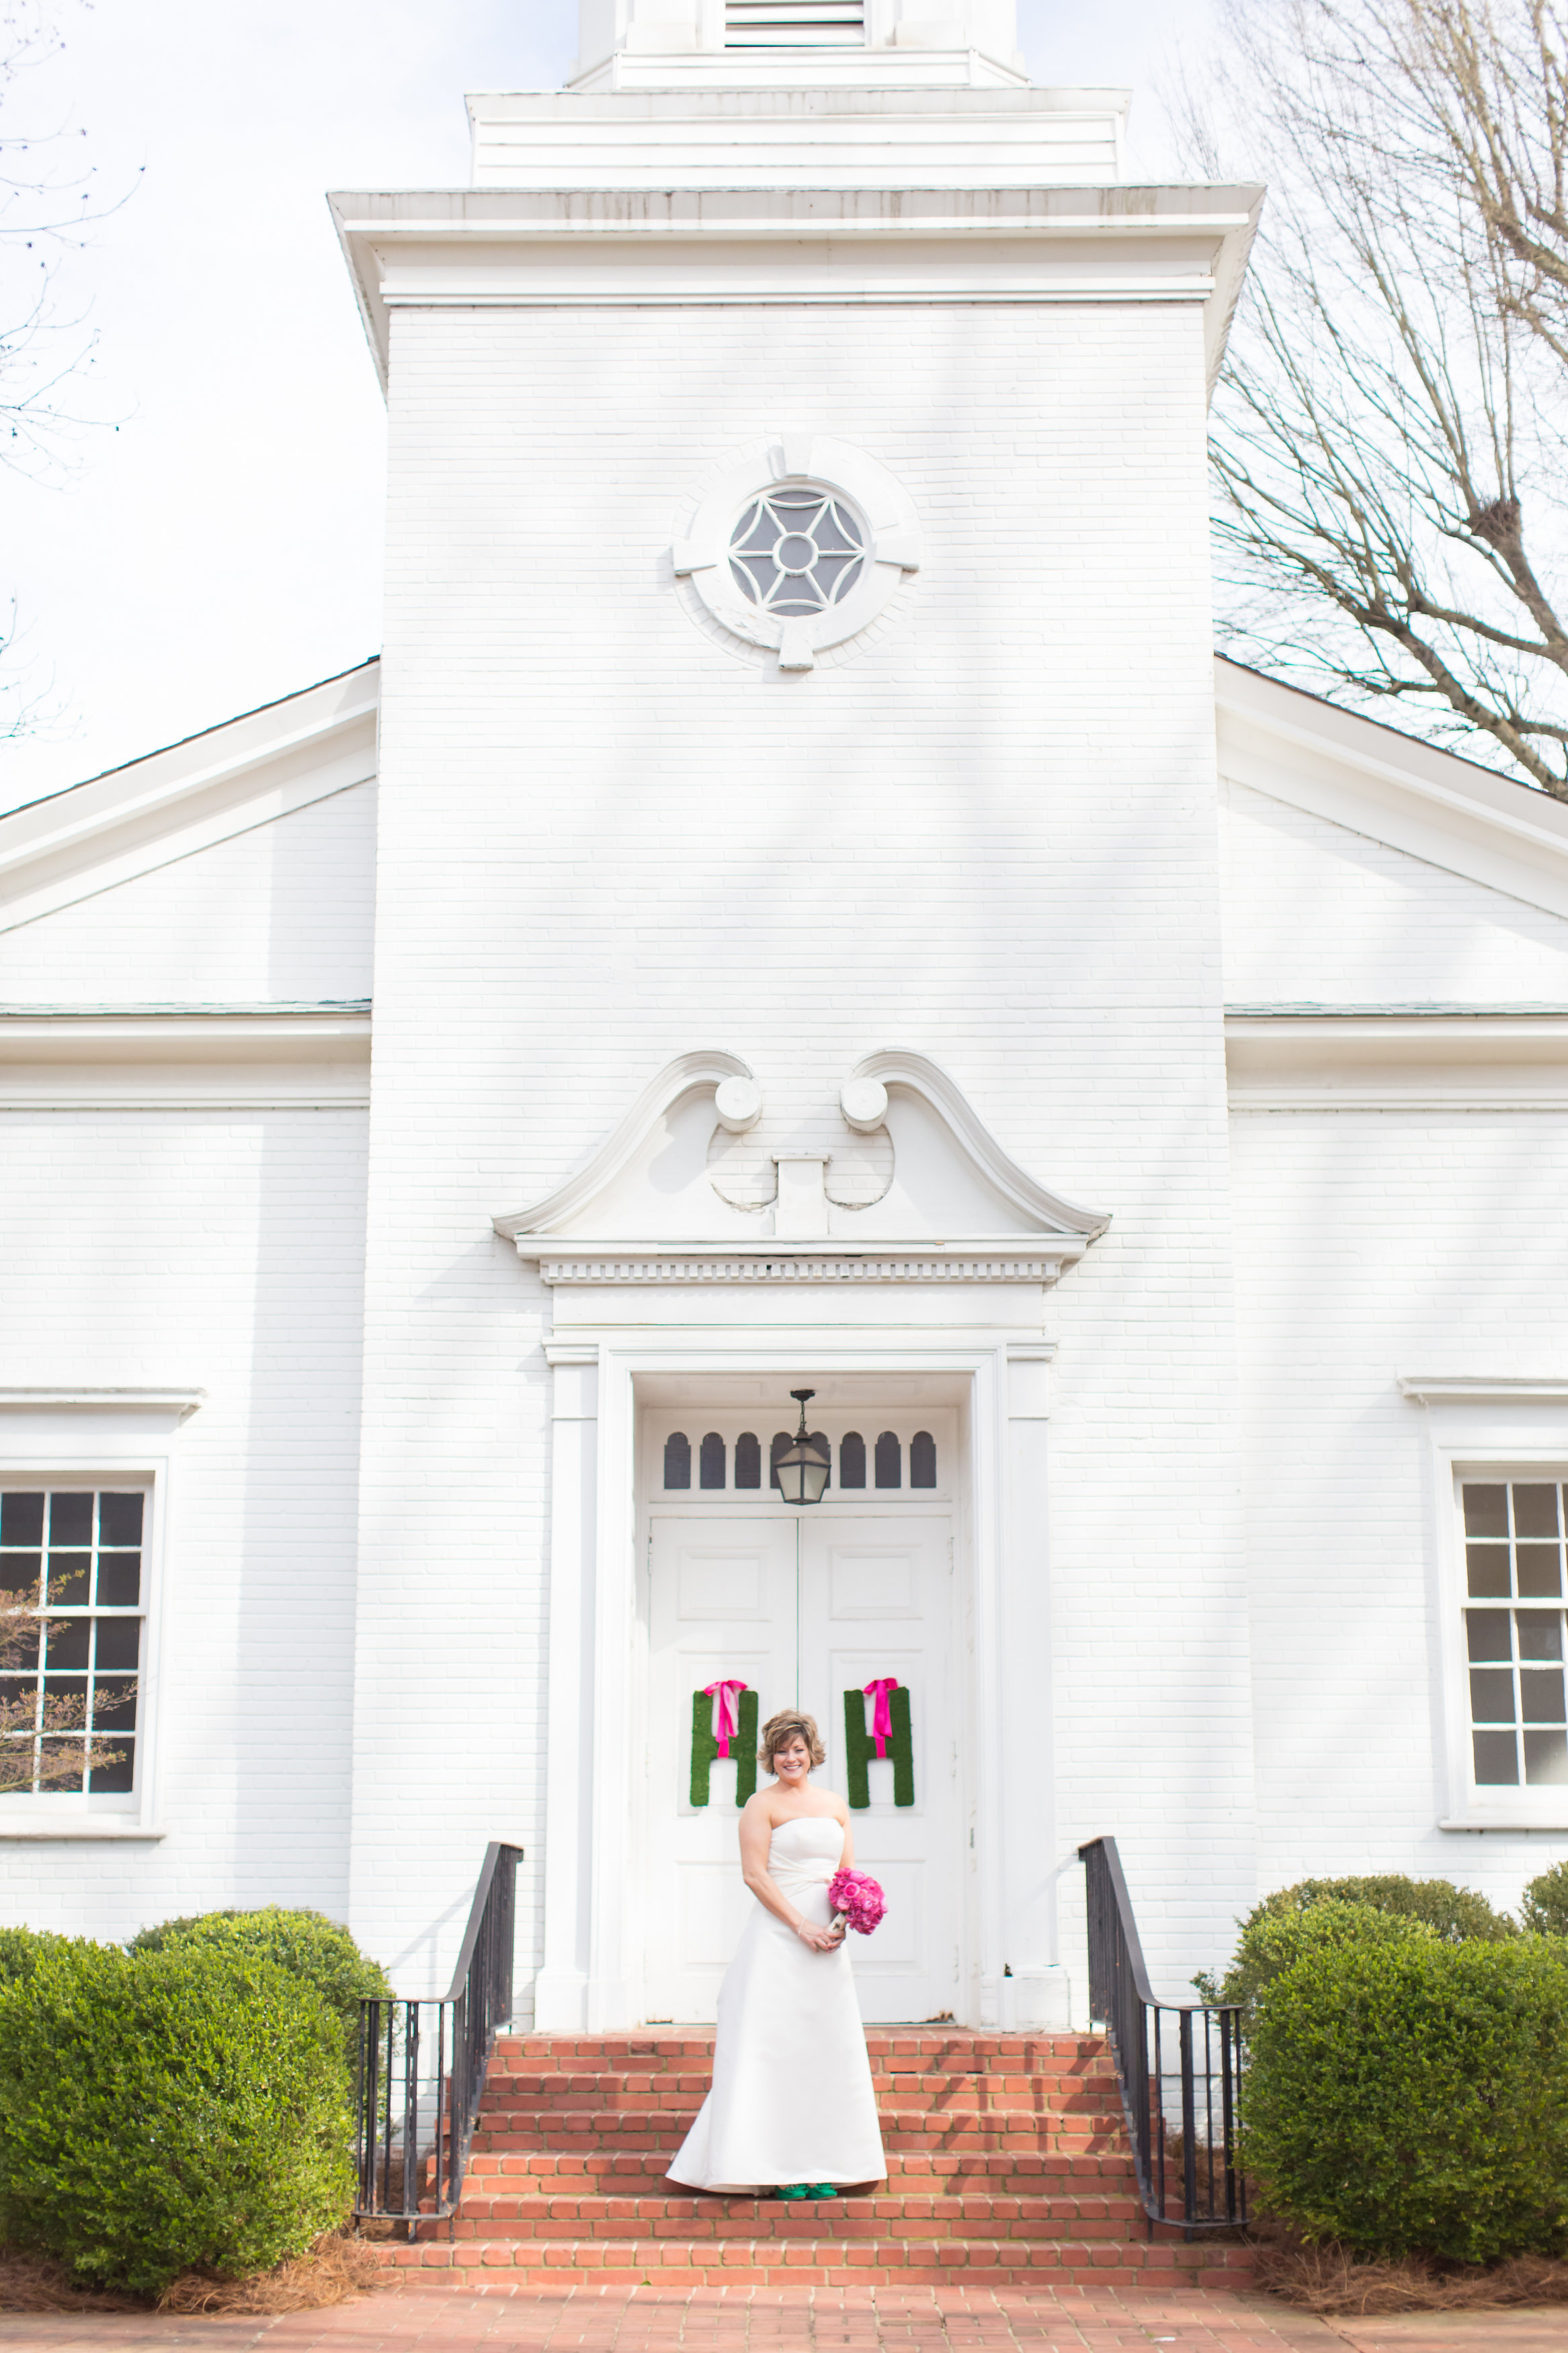 View More: http://laurenrosenauphoto.pass.us/heatherandseanwedding